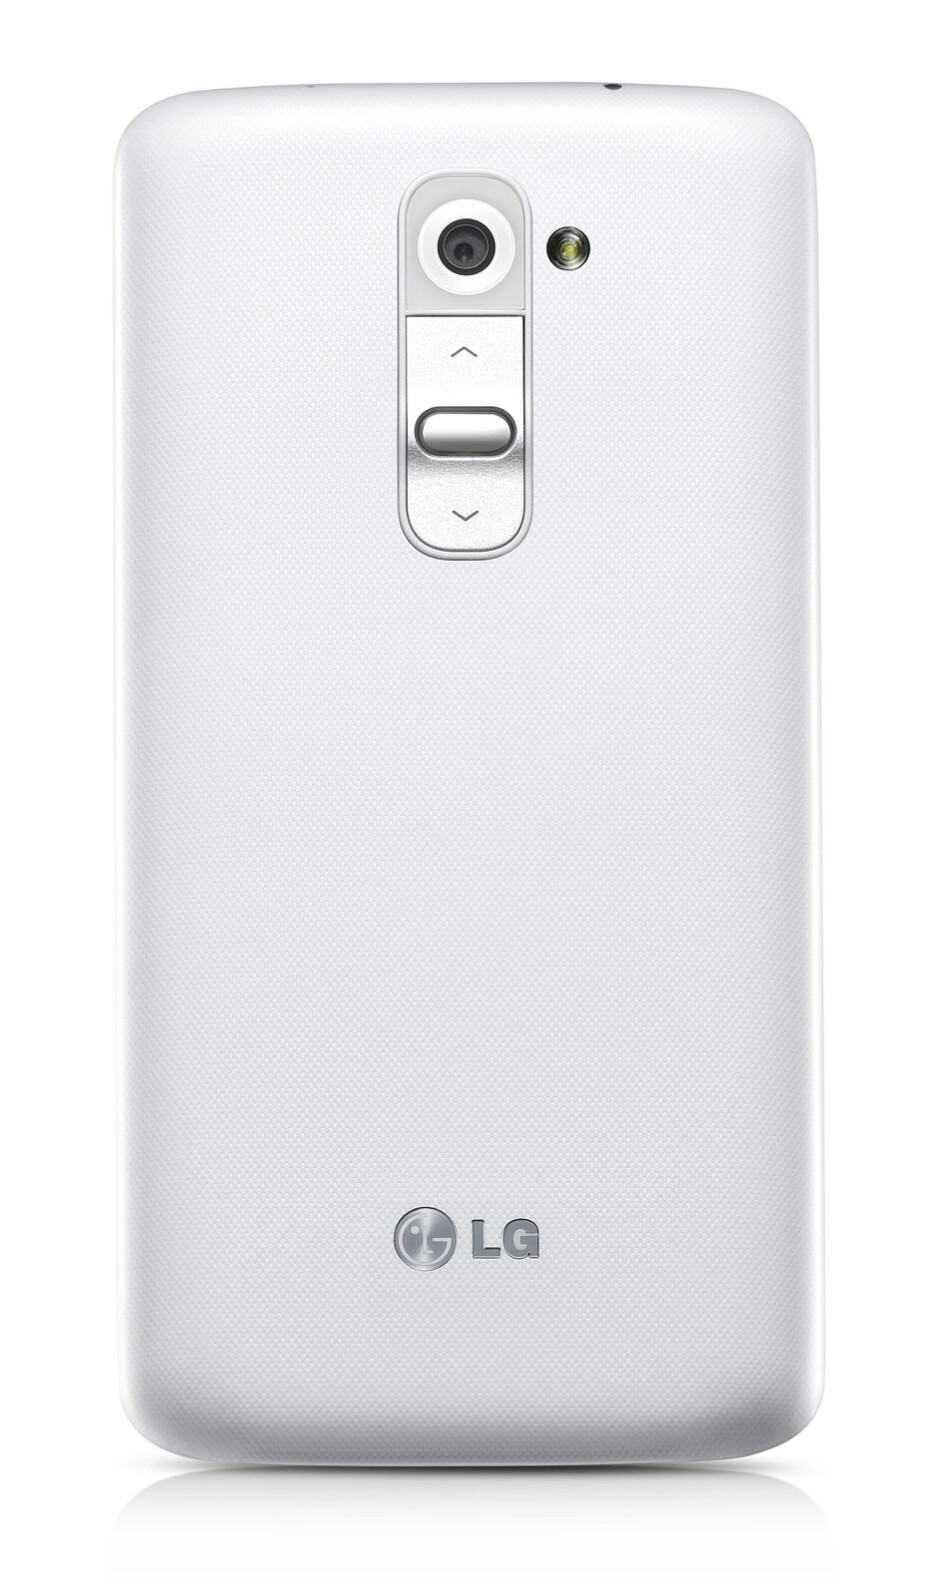 The LG G2 - learning from you - LG G2 is the new Android heavyweight to beat: specs review